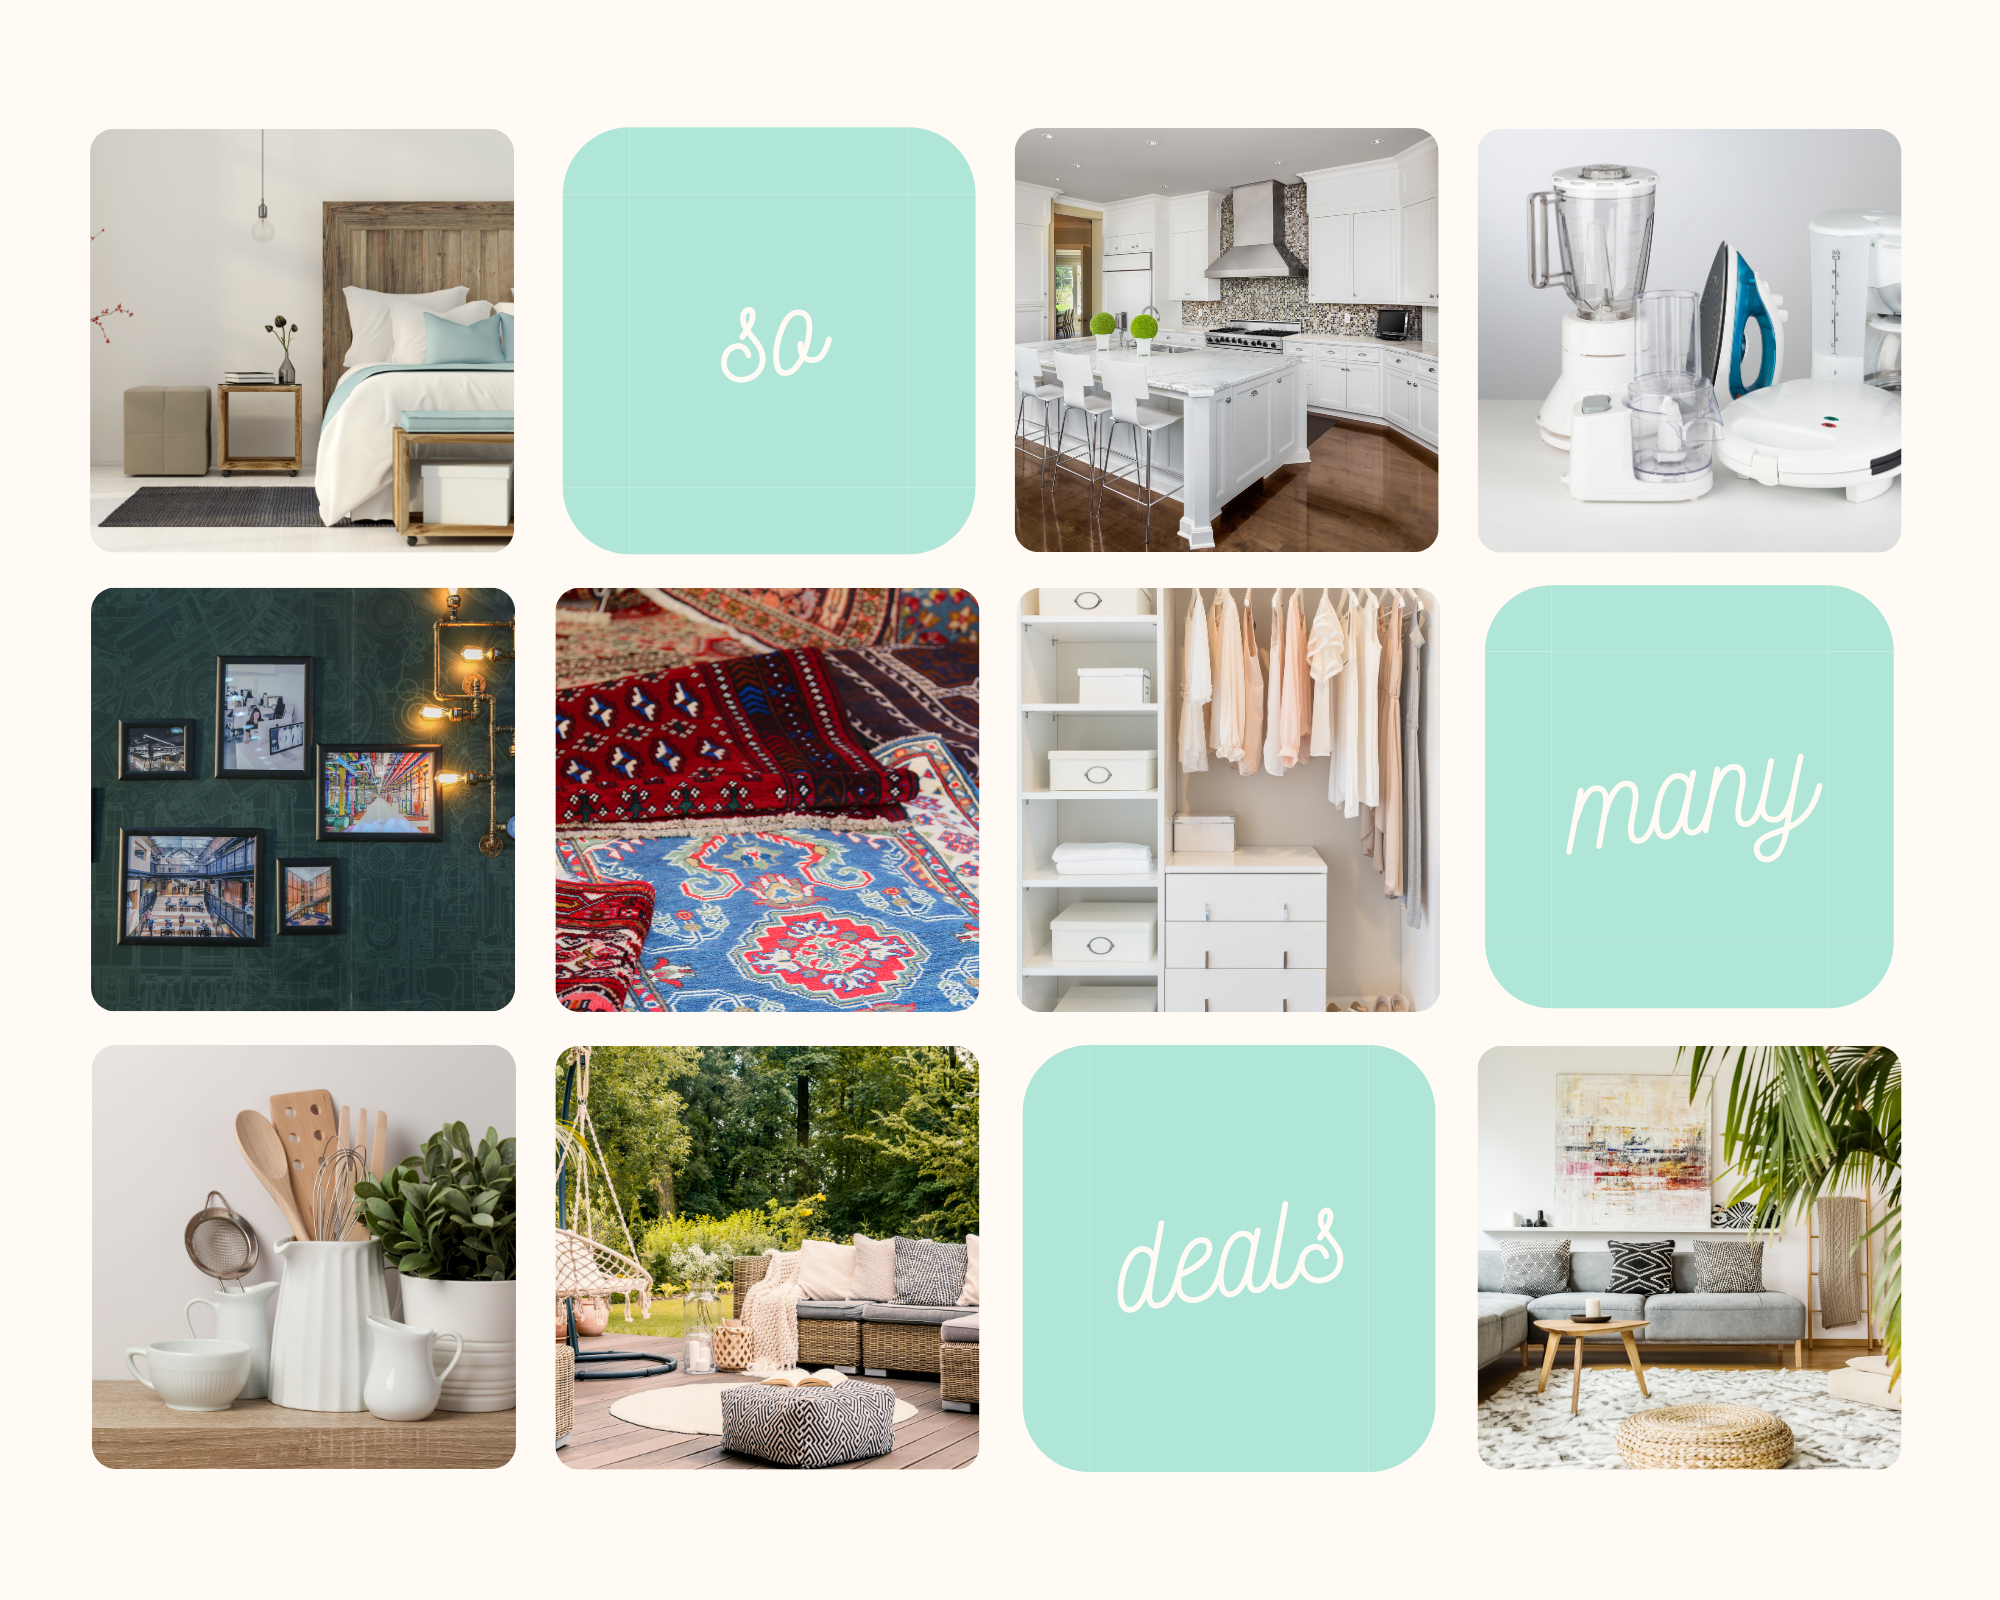 way day deals, wayfair sale, shopping, holiday shopping, shopping deals, bedroom furniture, home decor, patio outdoor furniture, kitchen upgrades, area rugs, farmhouse style, farmhouse decor